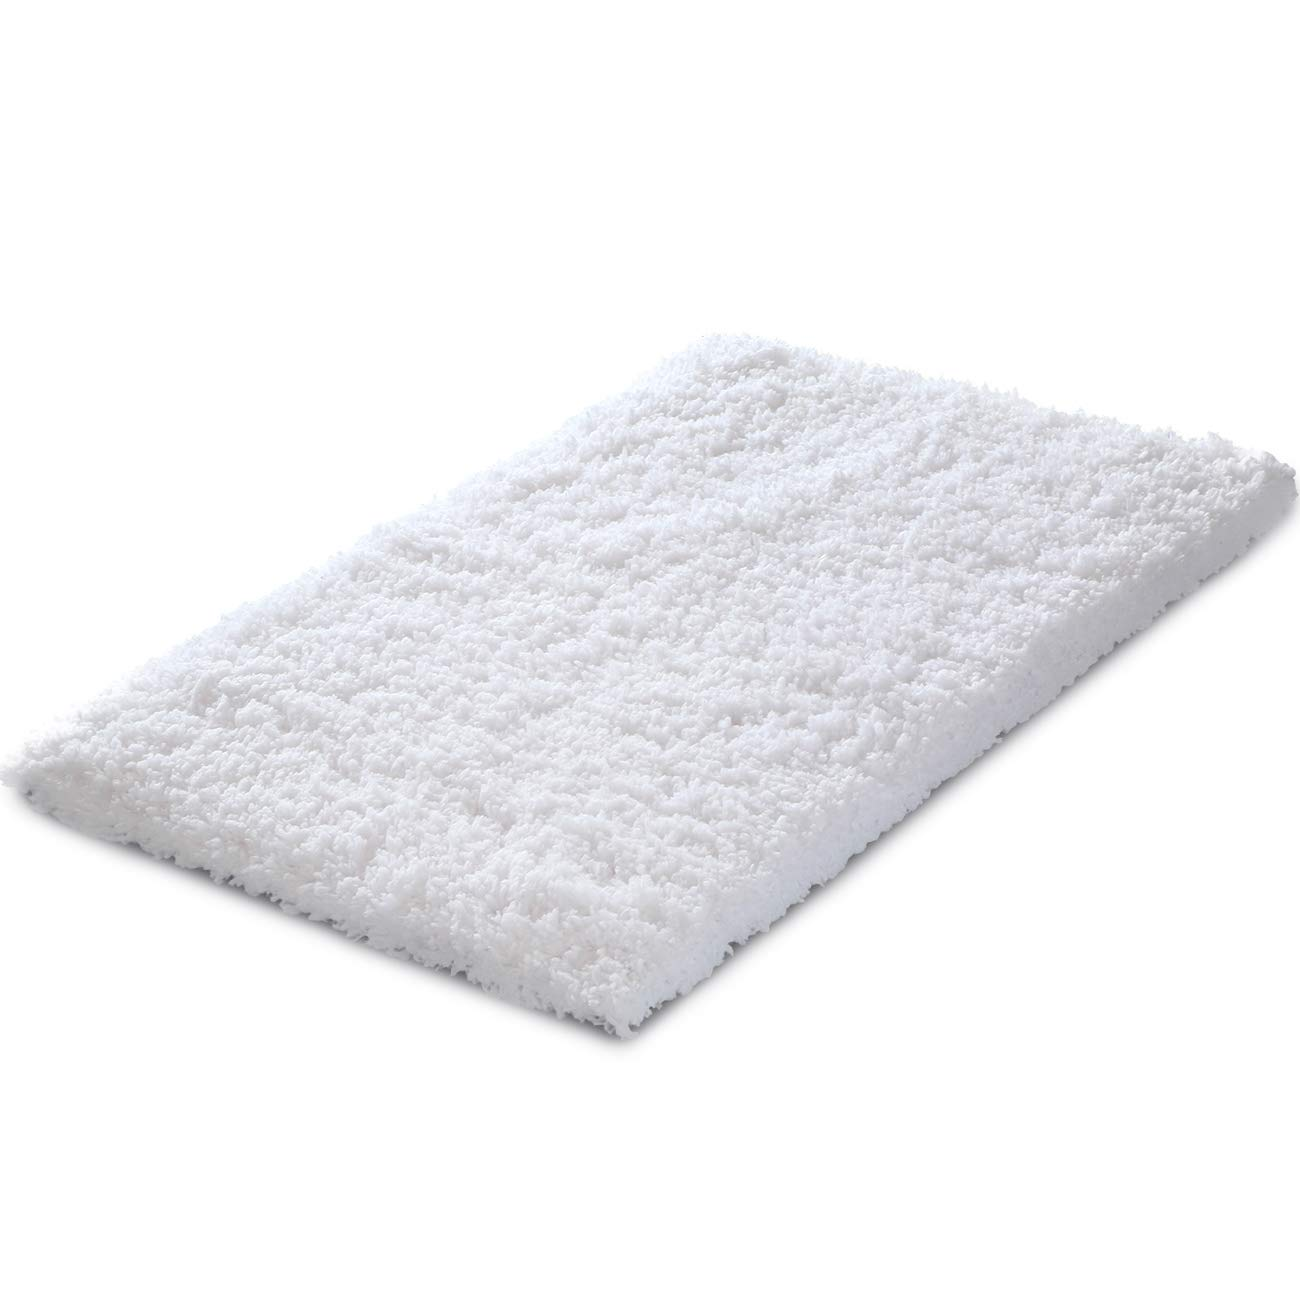 KMAT  Bath Mat 31'' x 19'' White Soft Plush Non Slip Absorbent Microfiber Bathroom and Shower Rugs Luxury Machine Washable Doormat Floor Mat for Bathroom Bathtub Bedroom Living Room Home Hotel